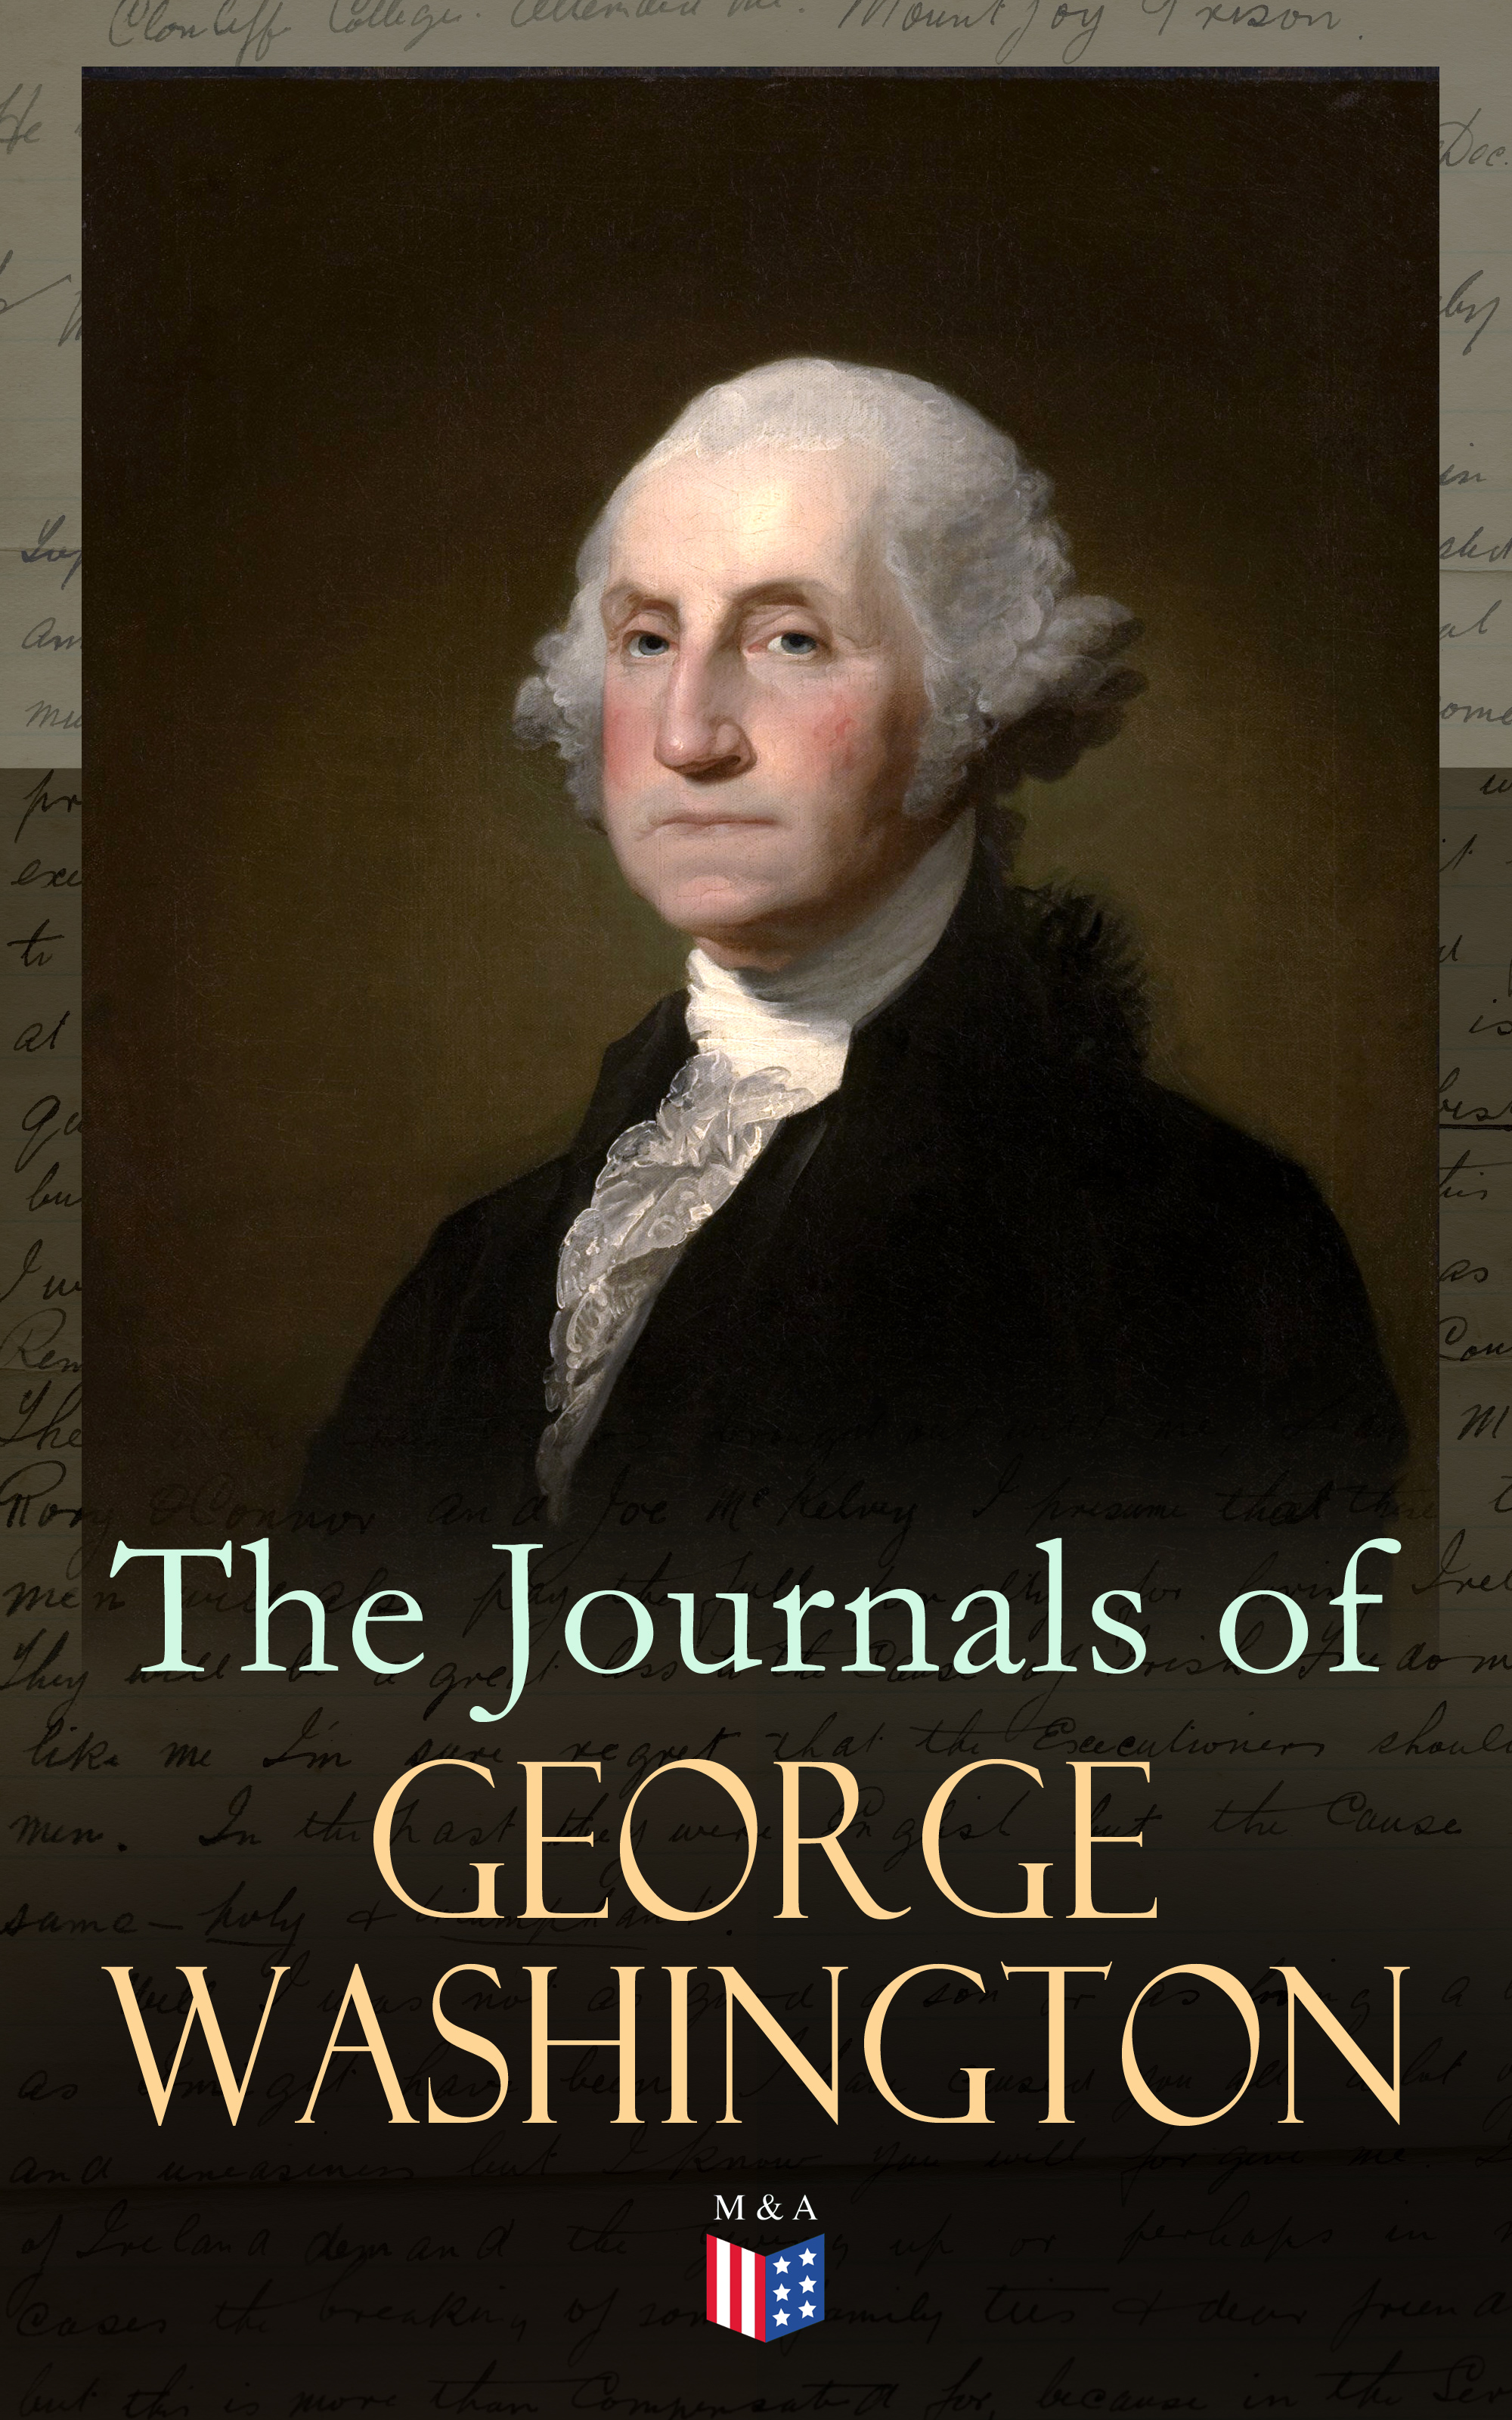 George Washington The Journals of George Washington george washington greene ollendorff s new method of learning to read write and speak the frech language